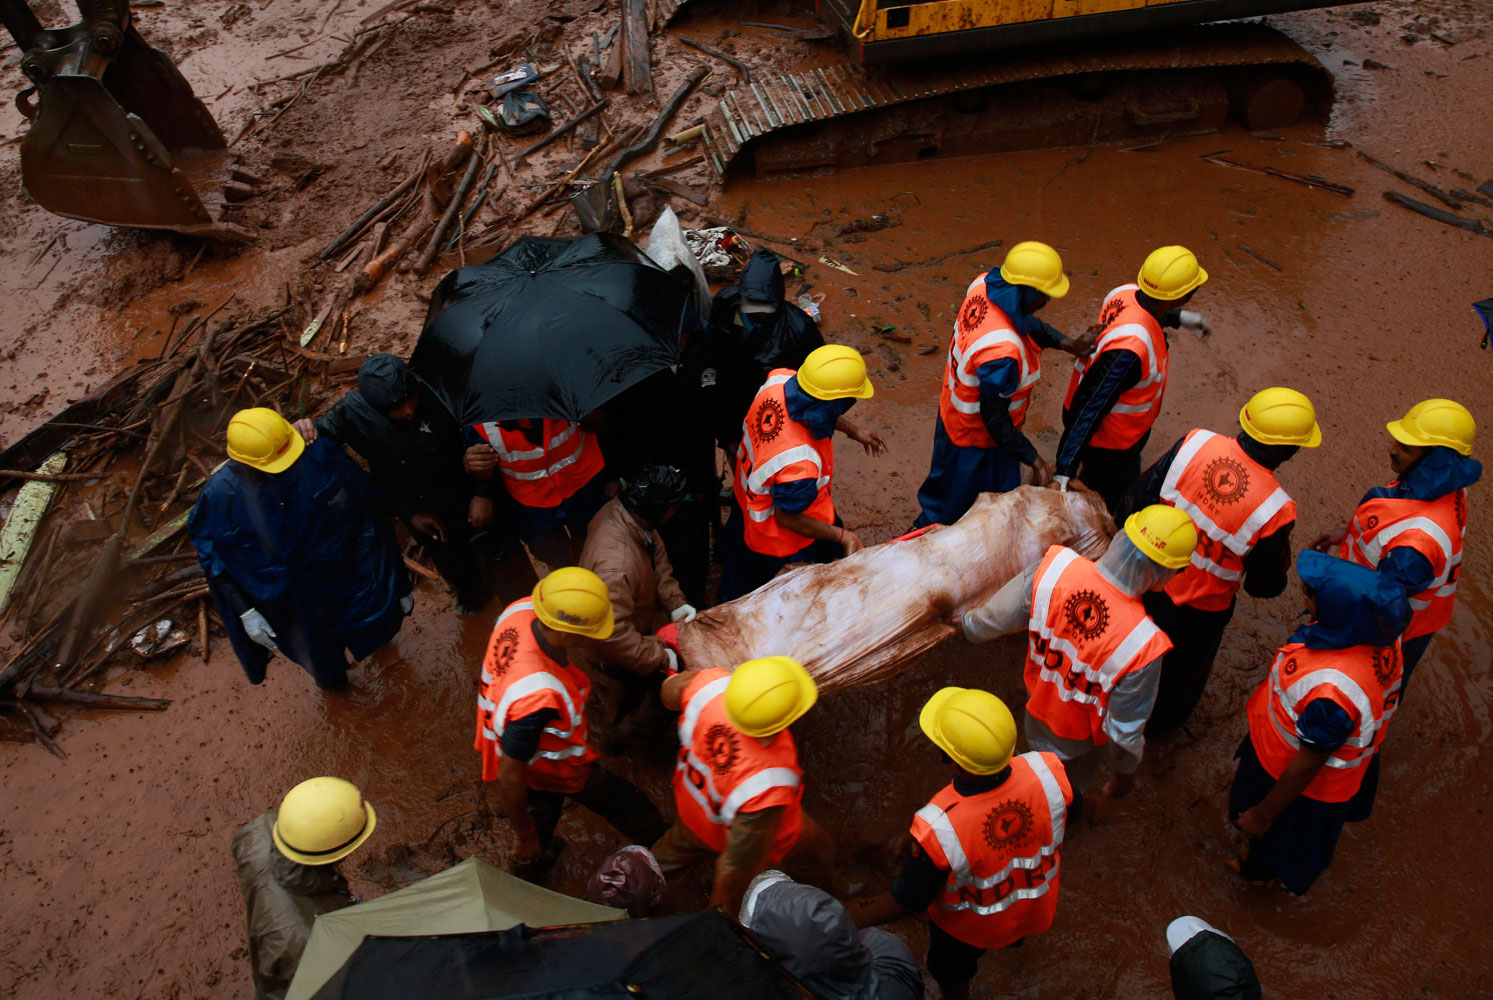 Rescue workers carry the body of a victim after a massive landslide in Malin village in Pune district of western Maharashtra state, India on July 31, 2014. Two days of torrential rains triggered the landslide early Wednesday, killing more than two dozen people and trapping more than 150, authorities said.